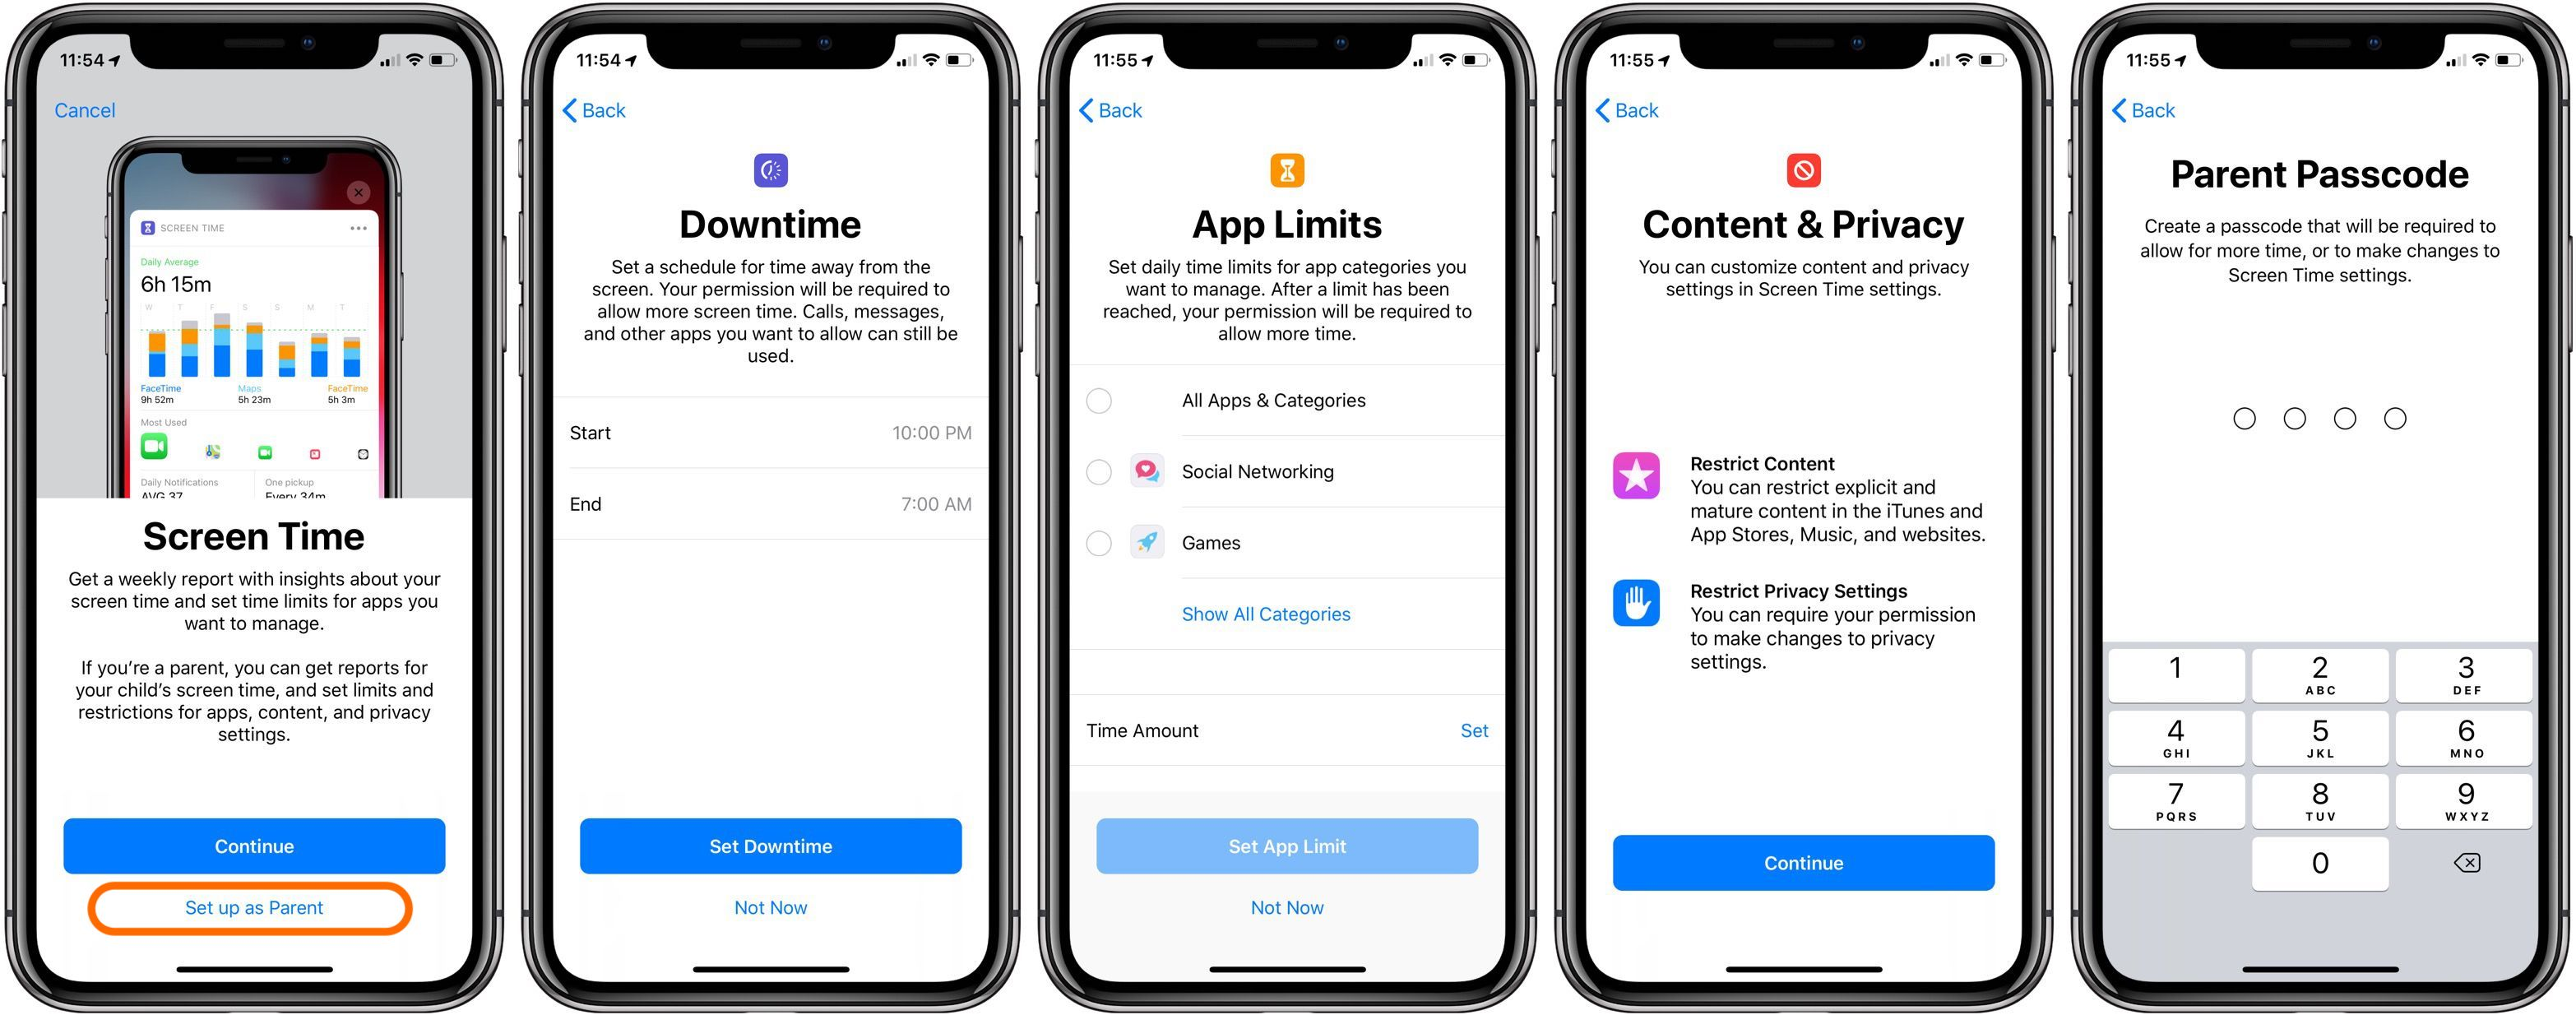 iOS 12: How to set up Screen Time as a parent on a child's iPhone or iPad